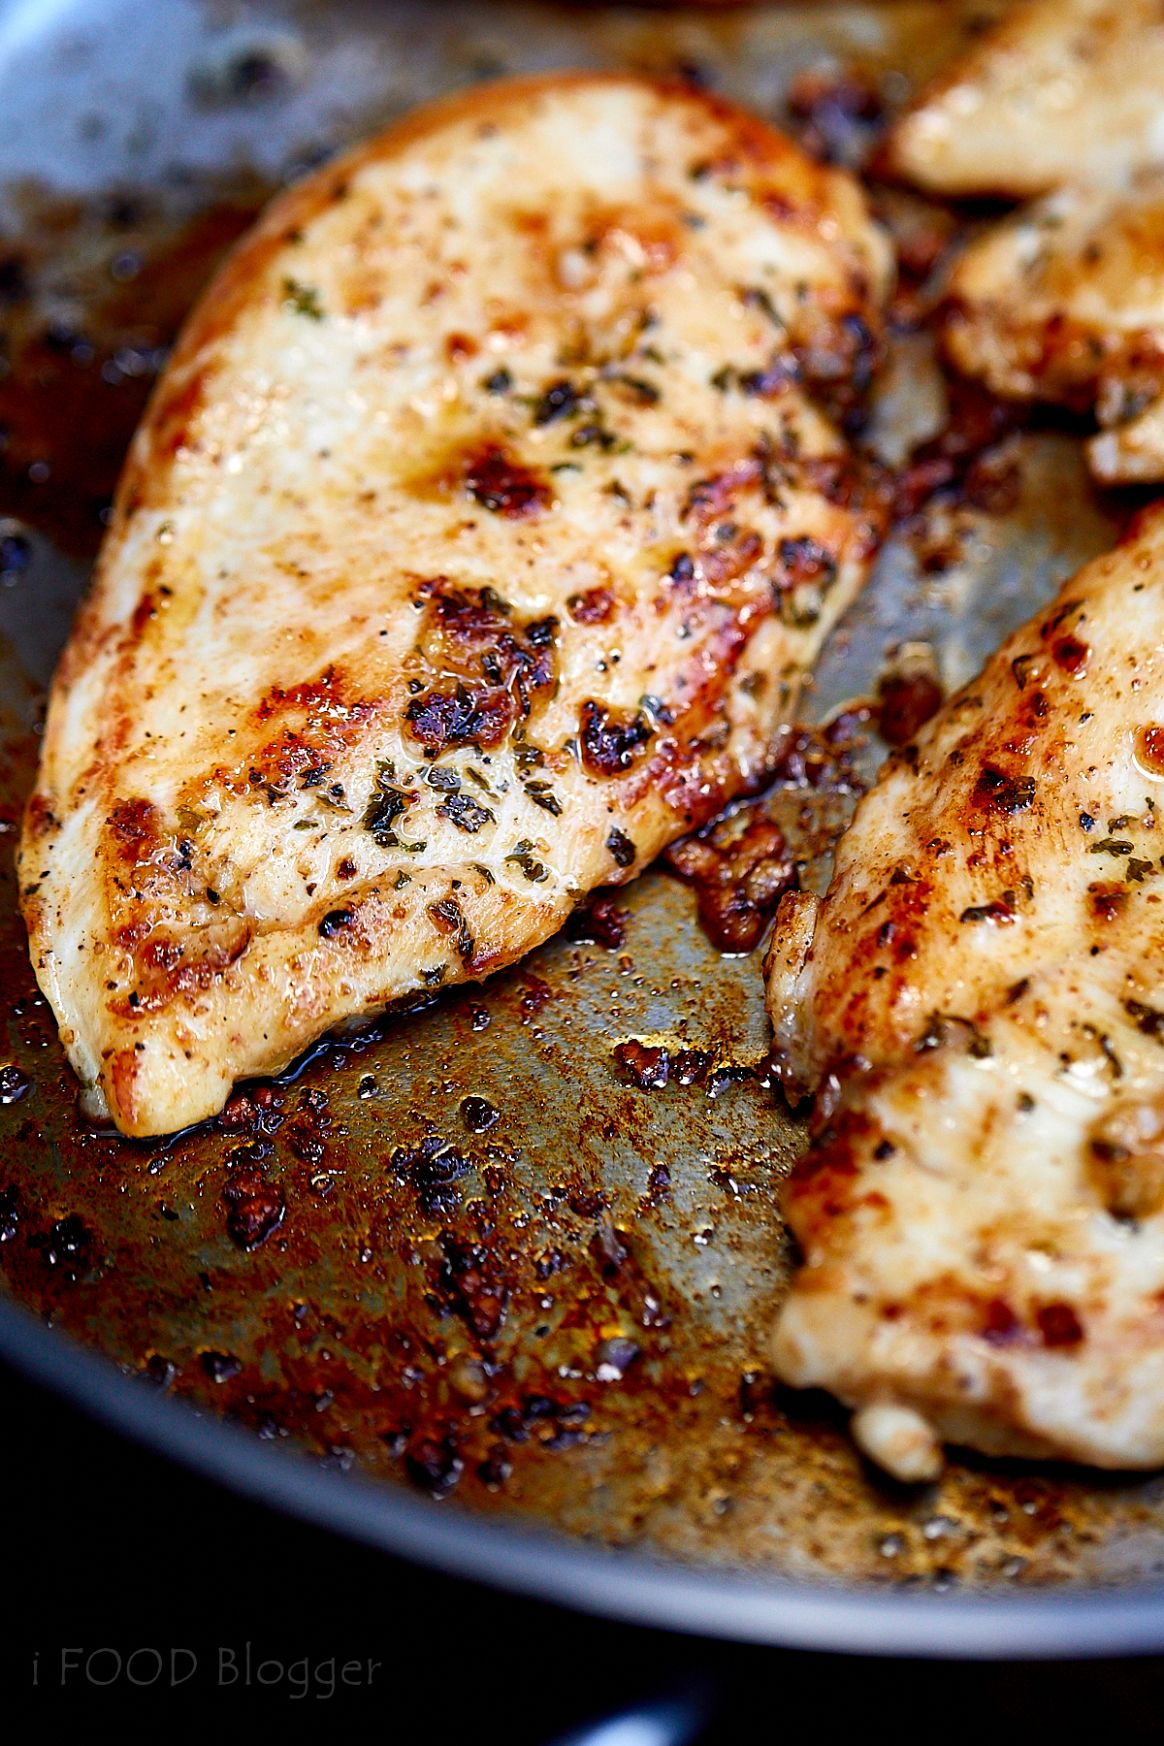 12-Minute Pan-Fried Chicken Breast - Recipes Chicken Breast Skillet